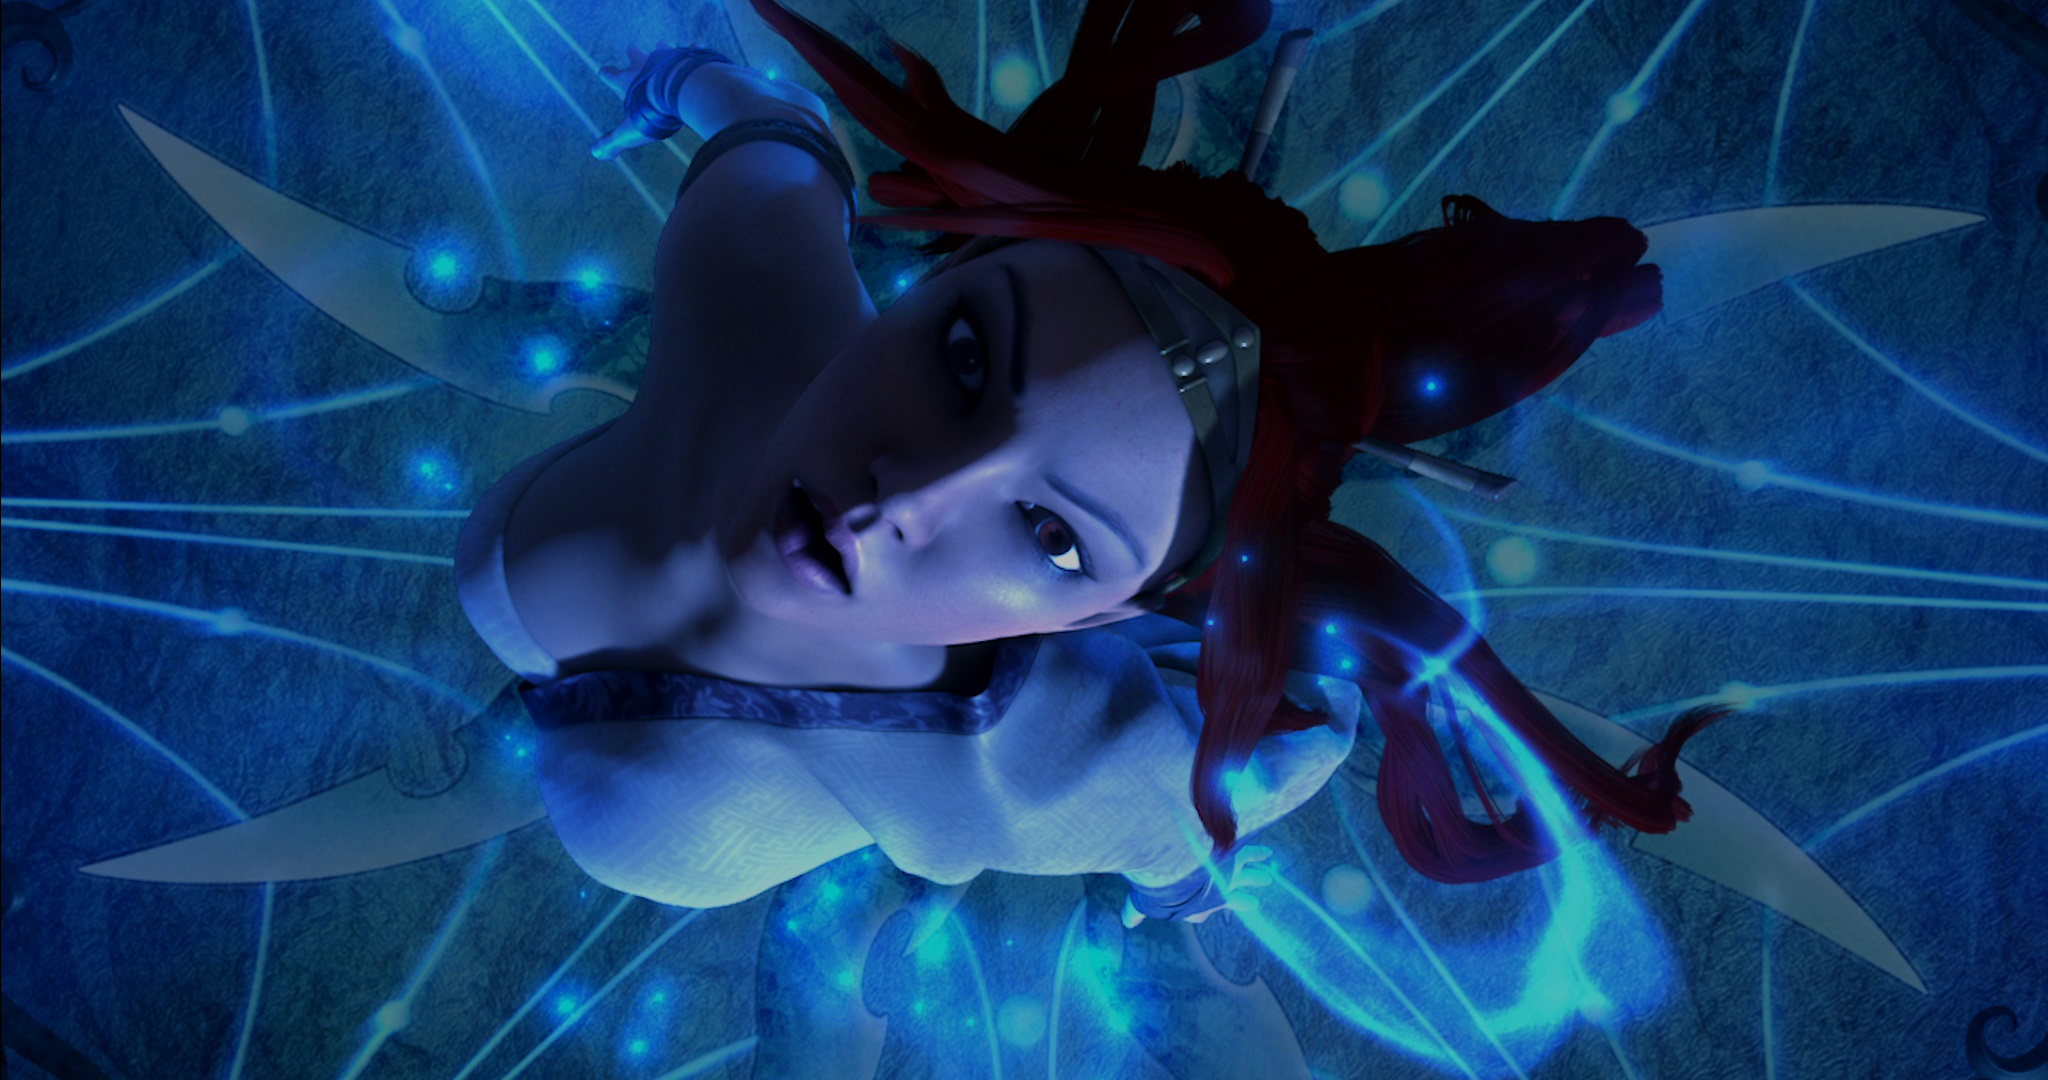 3rd Strike Com Heavenly Sword Blu Ray Movie Review